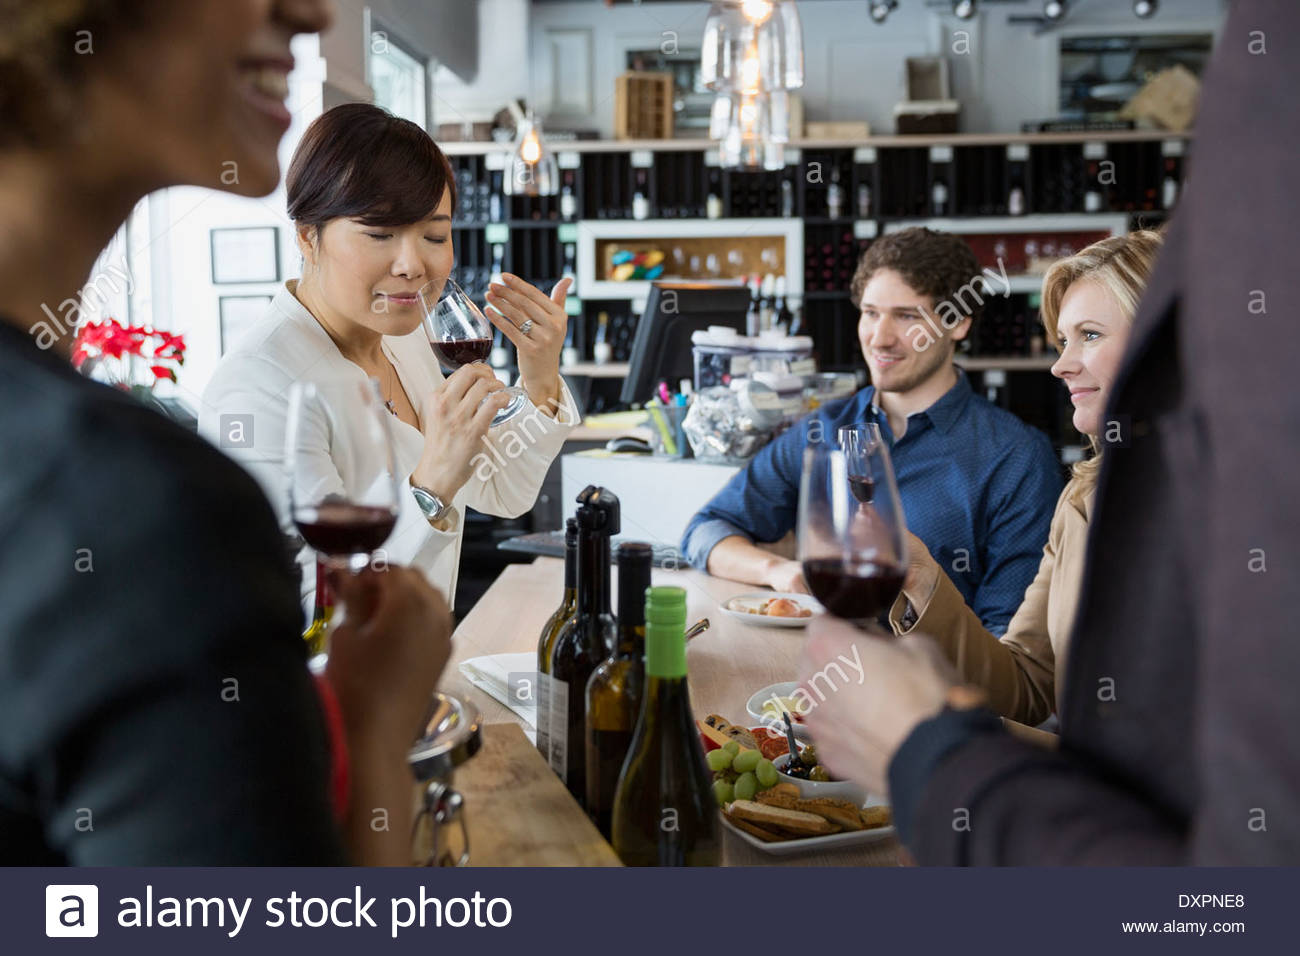 Sommelier and couples wine tasting in store - Stock Image